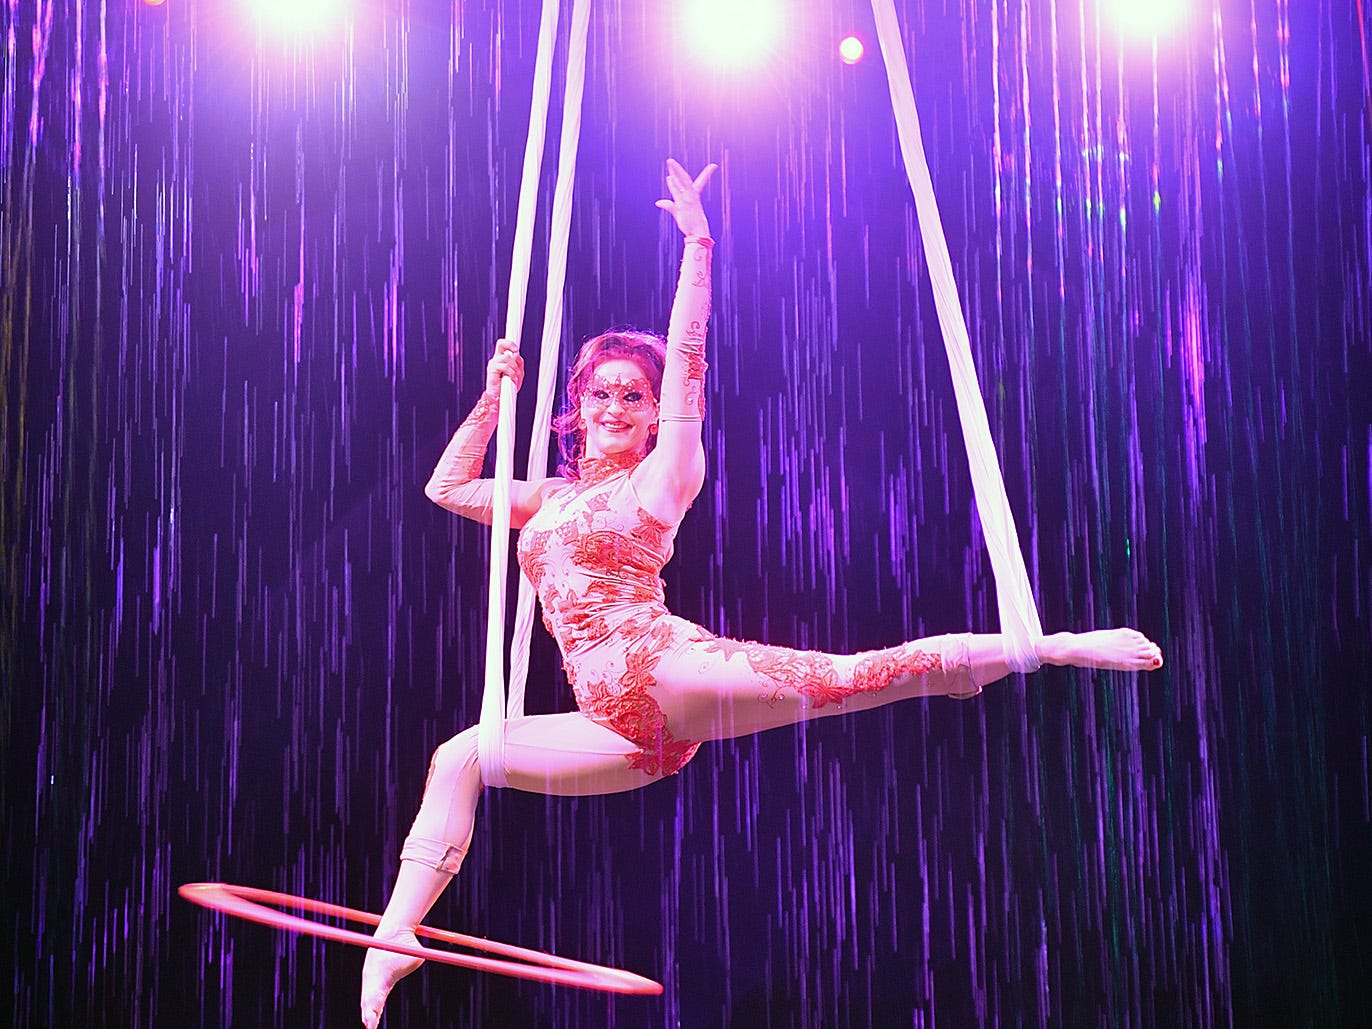 Many of the acts in Cirque Italia feature performers high above the stage surrounded by streams of fountains.